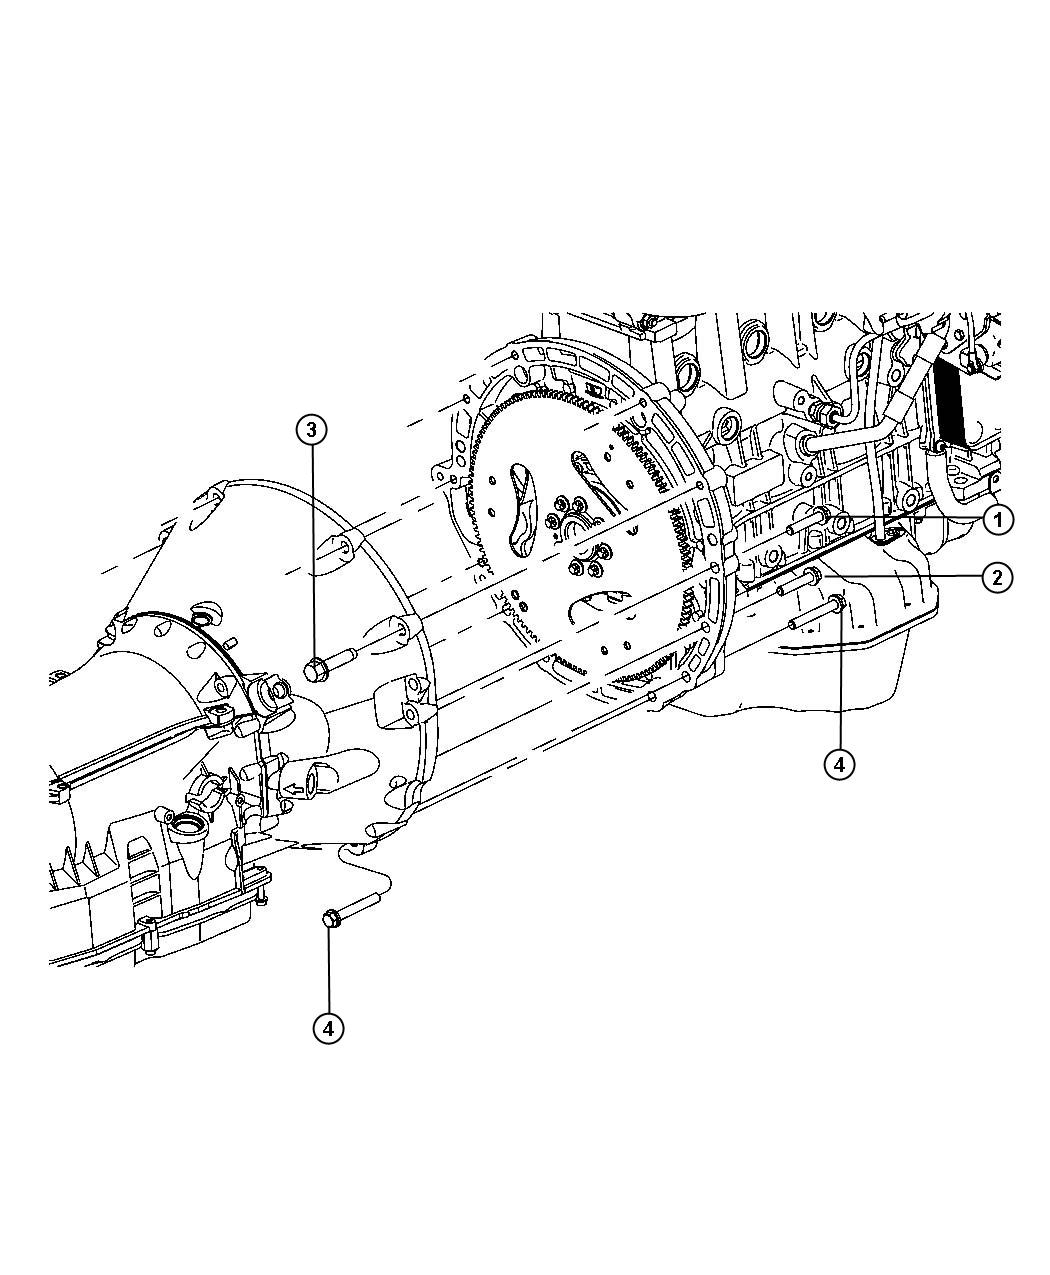 Chrysler 200 Used For Bolt And Washer Used For